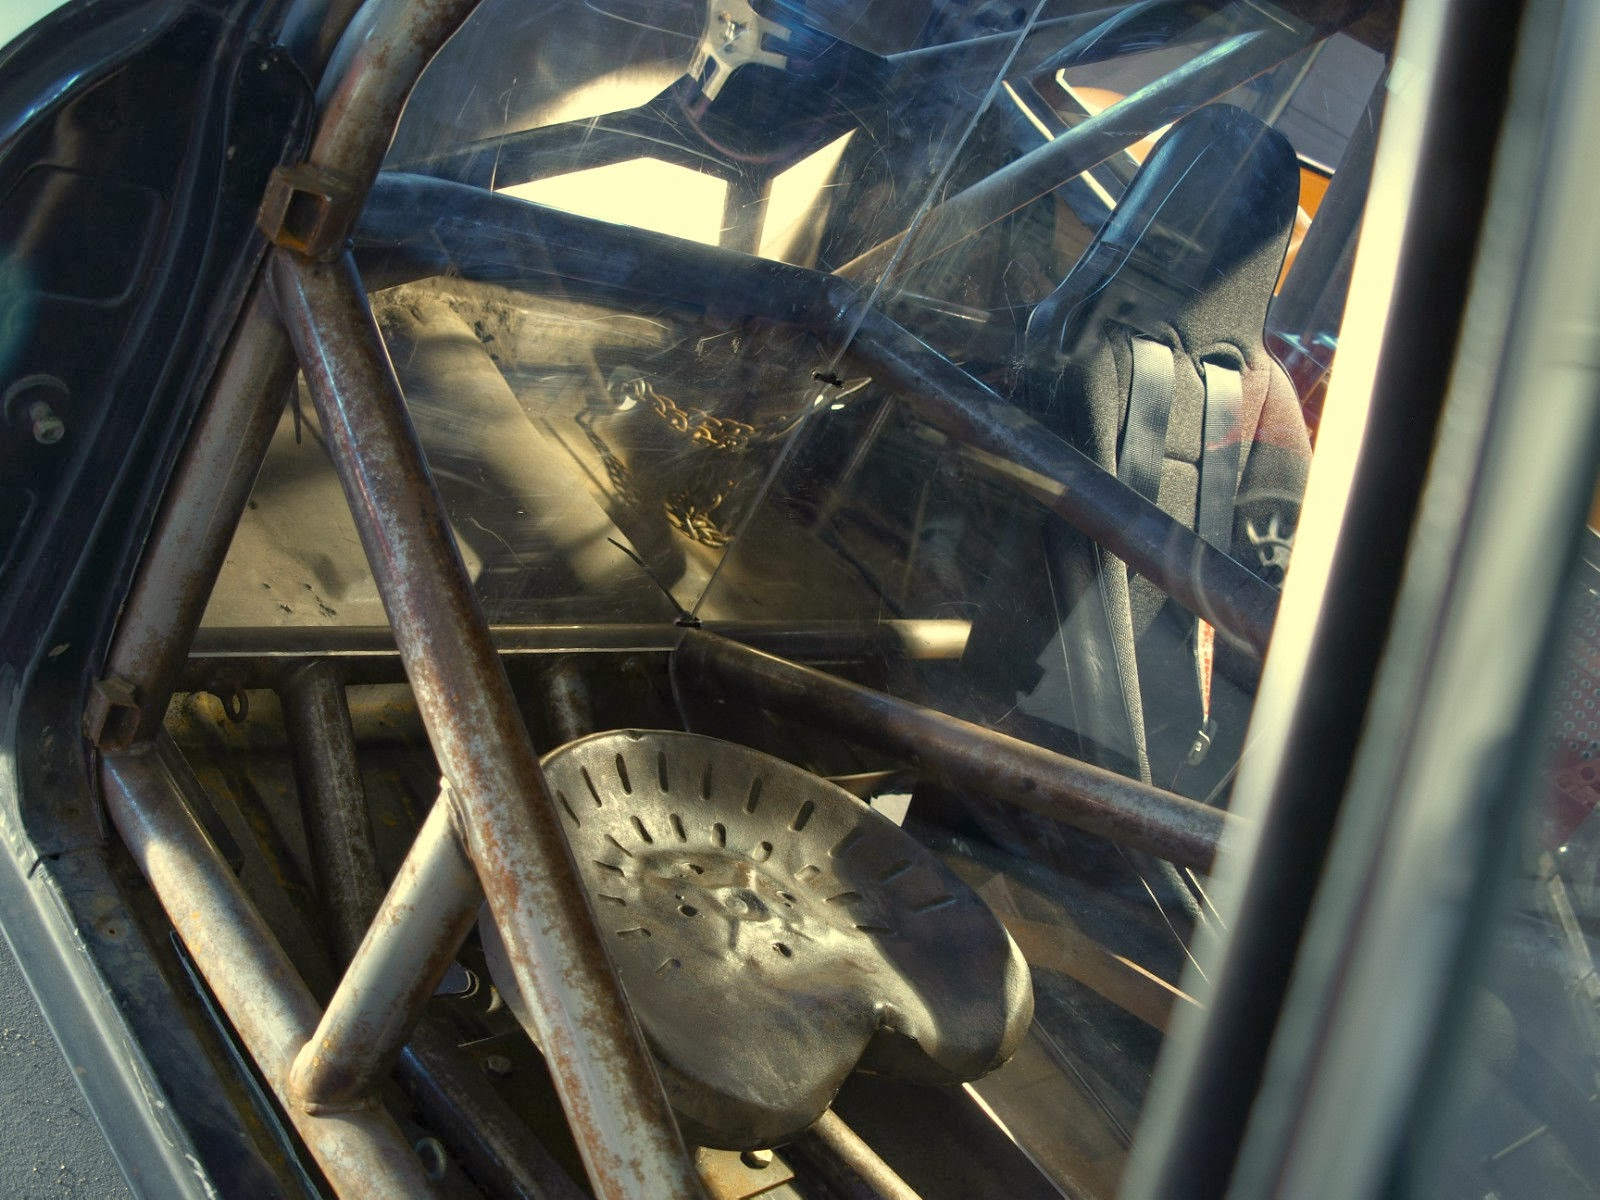 Hard to really tell the condition of the inside from the few photos included but it looks like there is a slightly oxidized roll cage and it is setup for